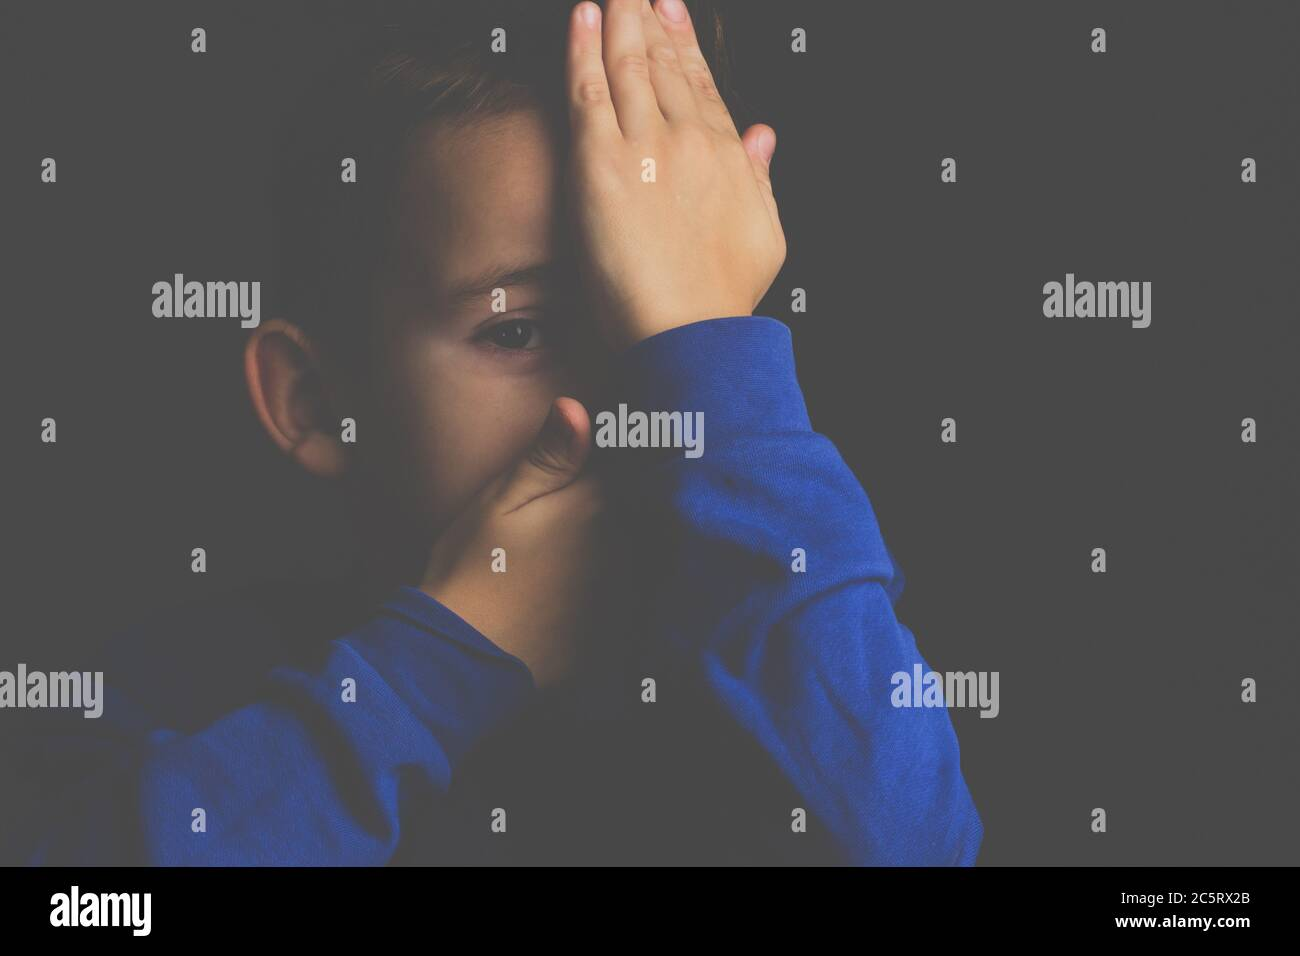 portrait of a dark-haired boy covering his face with his hands on a dark background Stock Photo